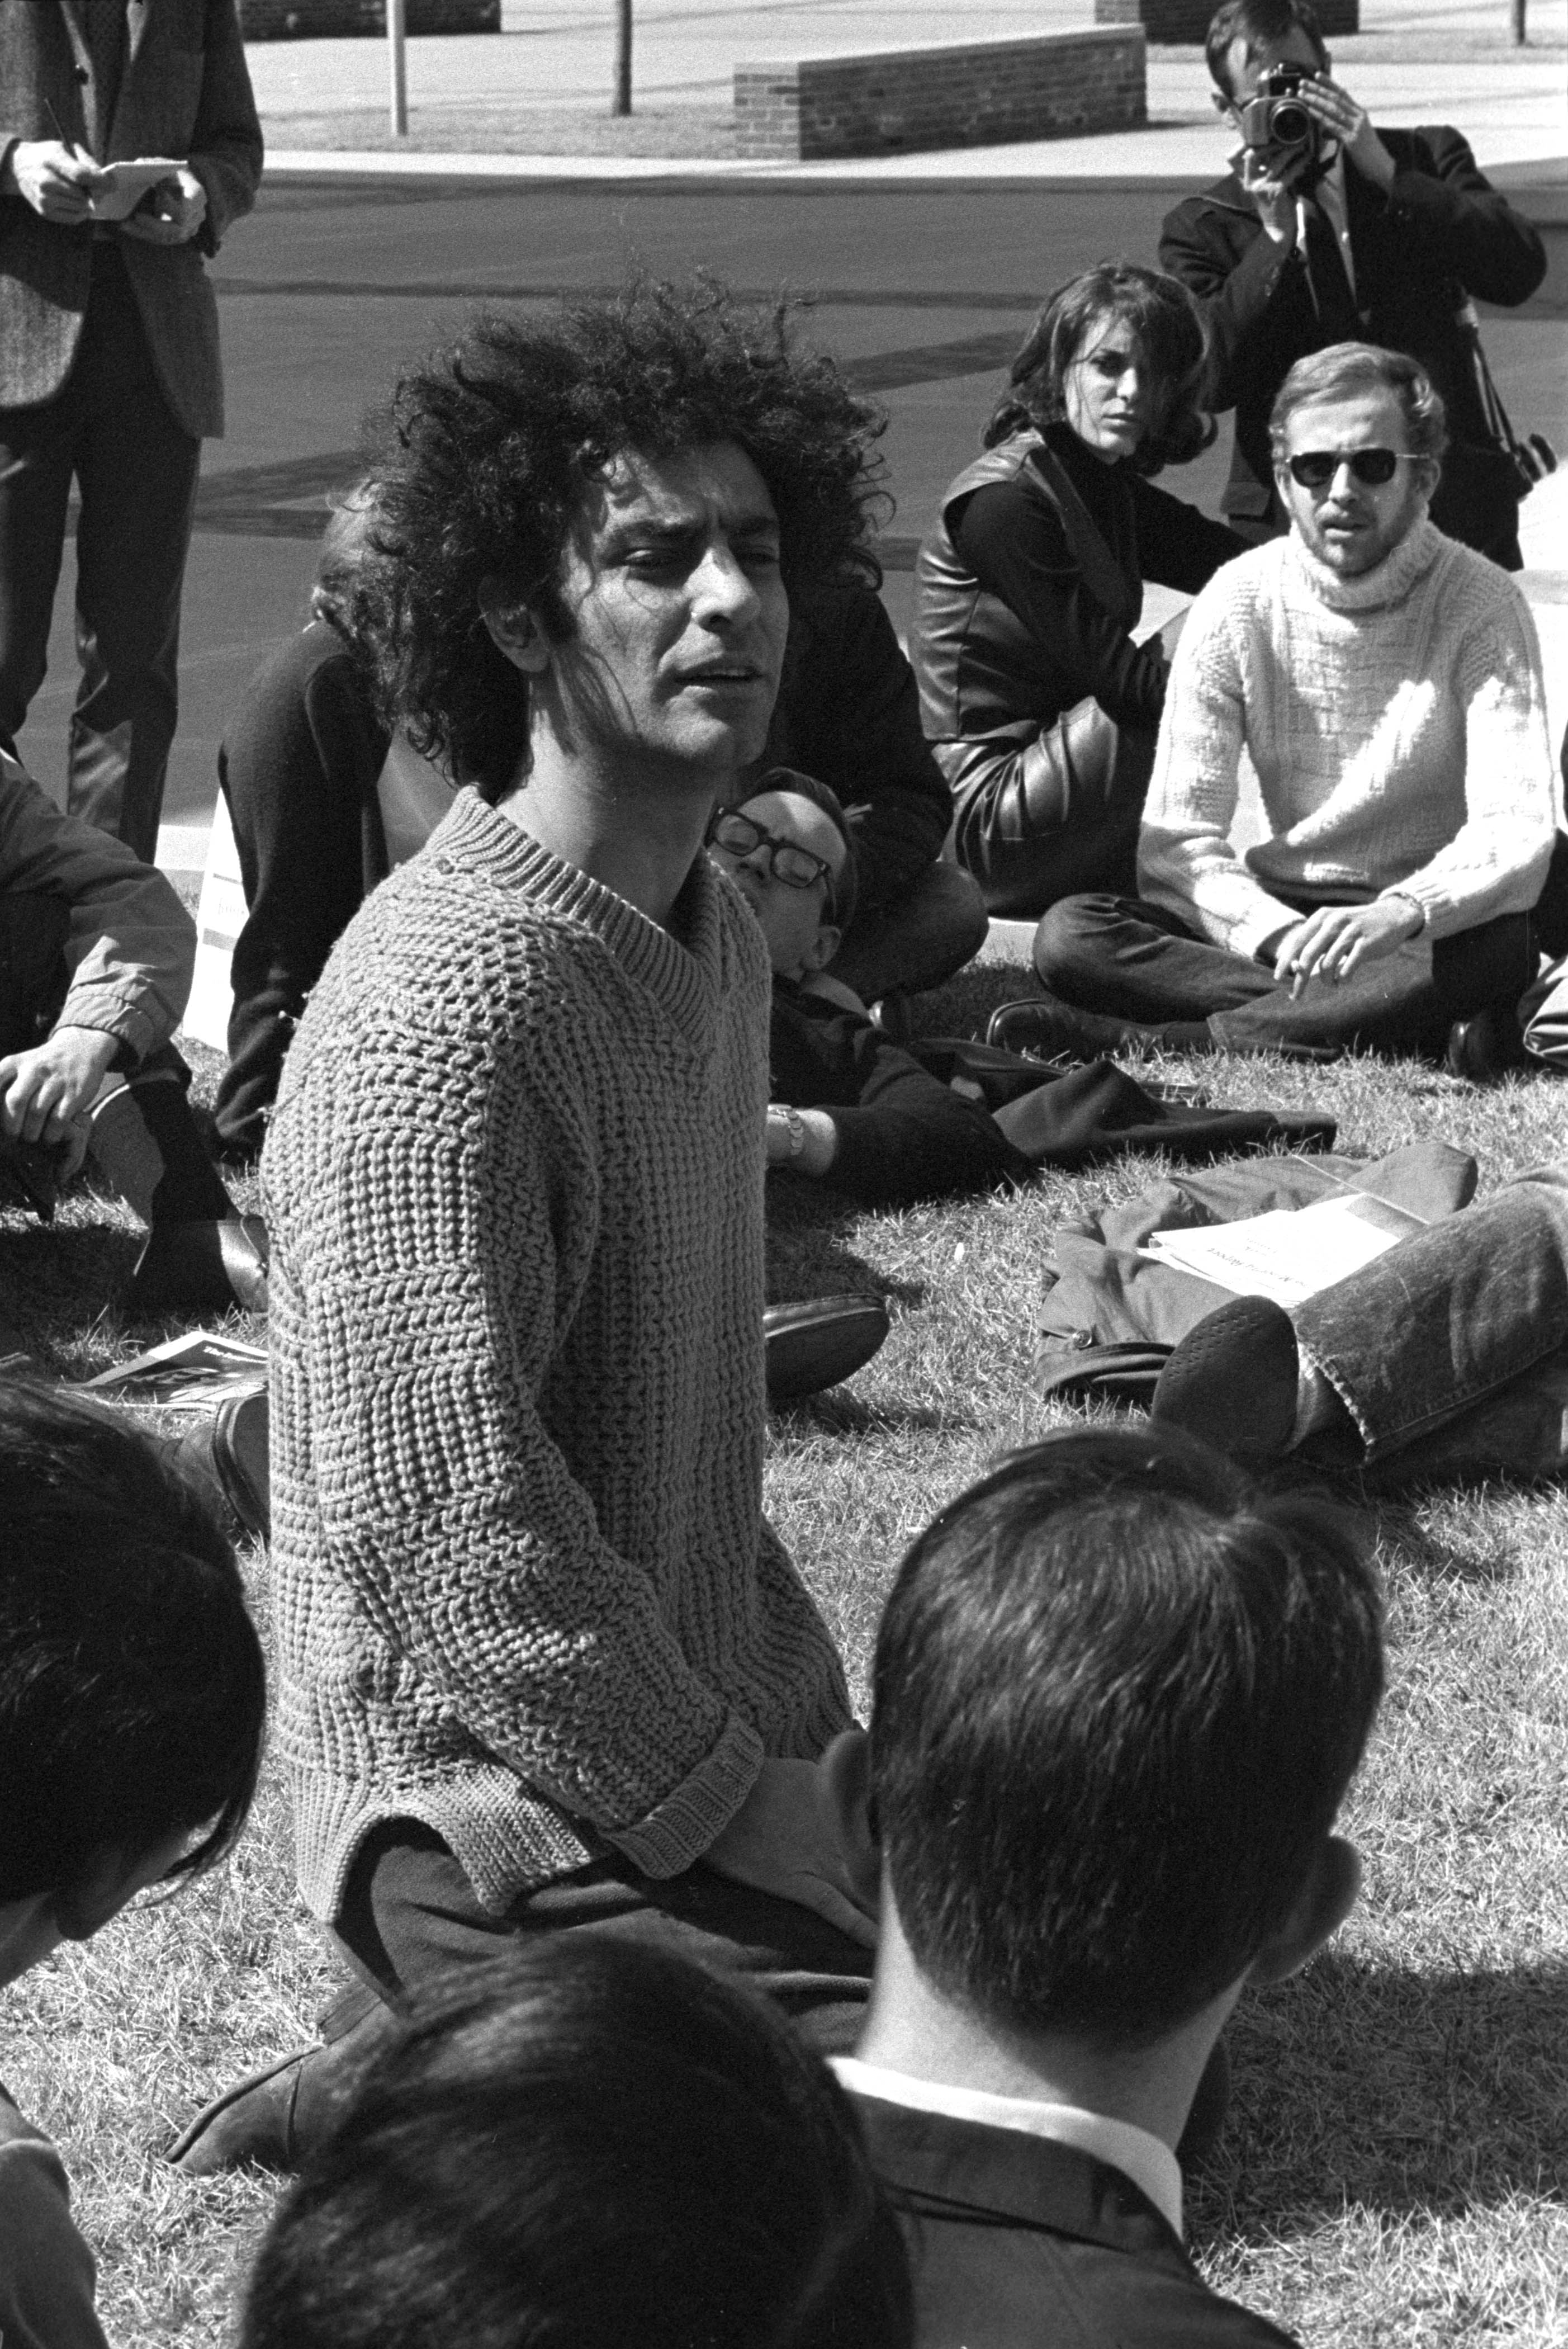 Abbie Hoffman on the Quad, March, 1969